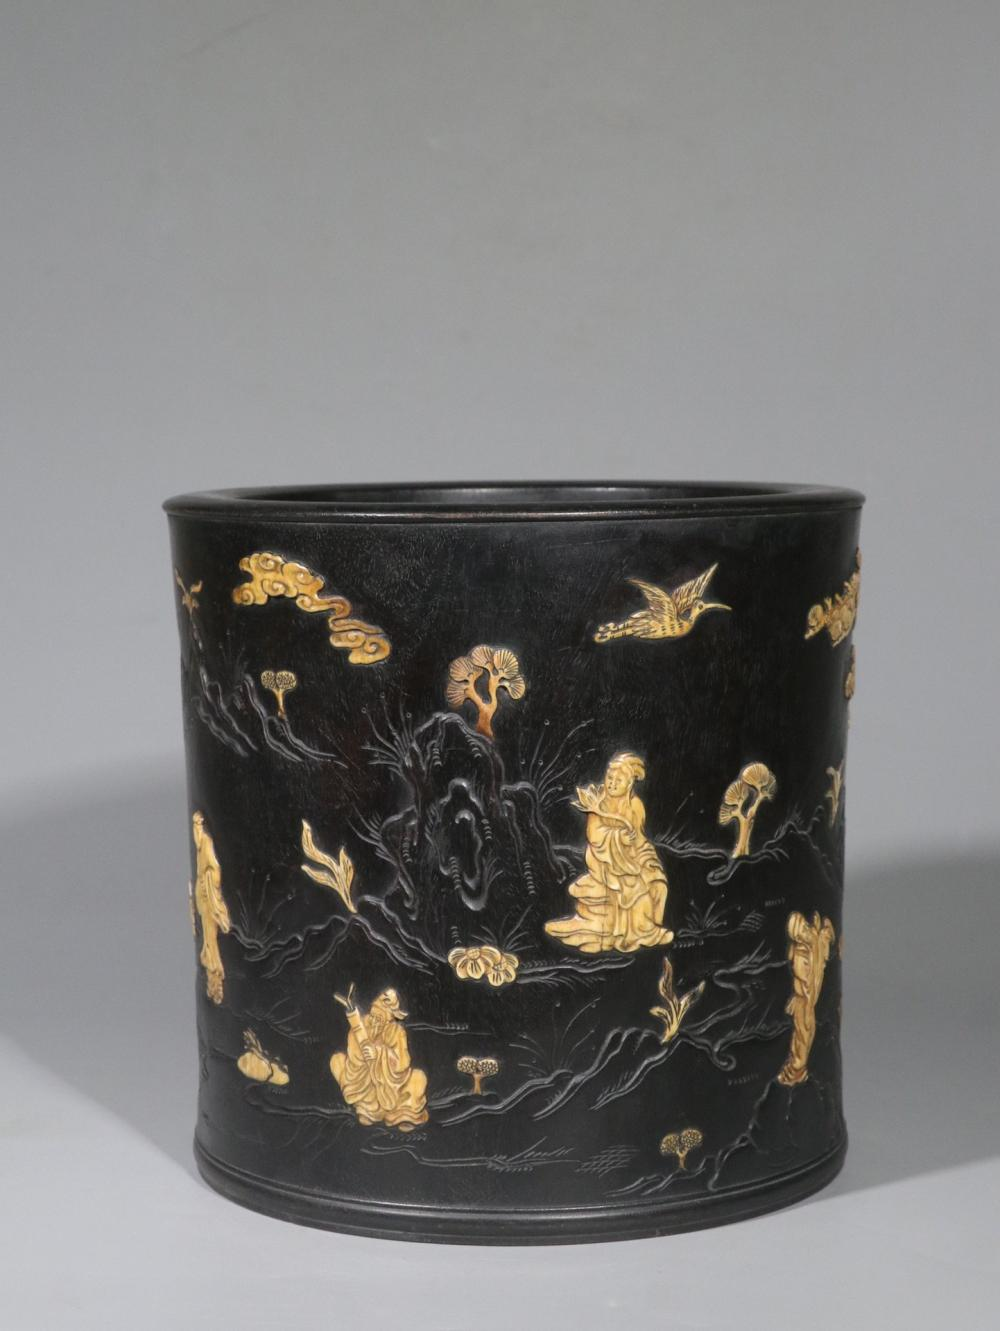 ZITAN WOOD CARVED AND DECORATED 'EIGHT IMMORTALS' BRUSH POT